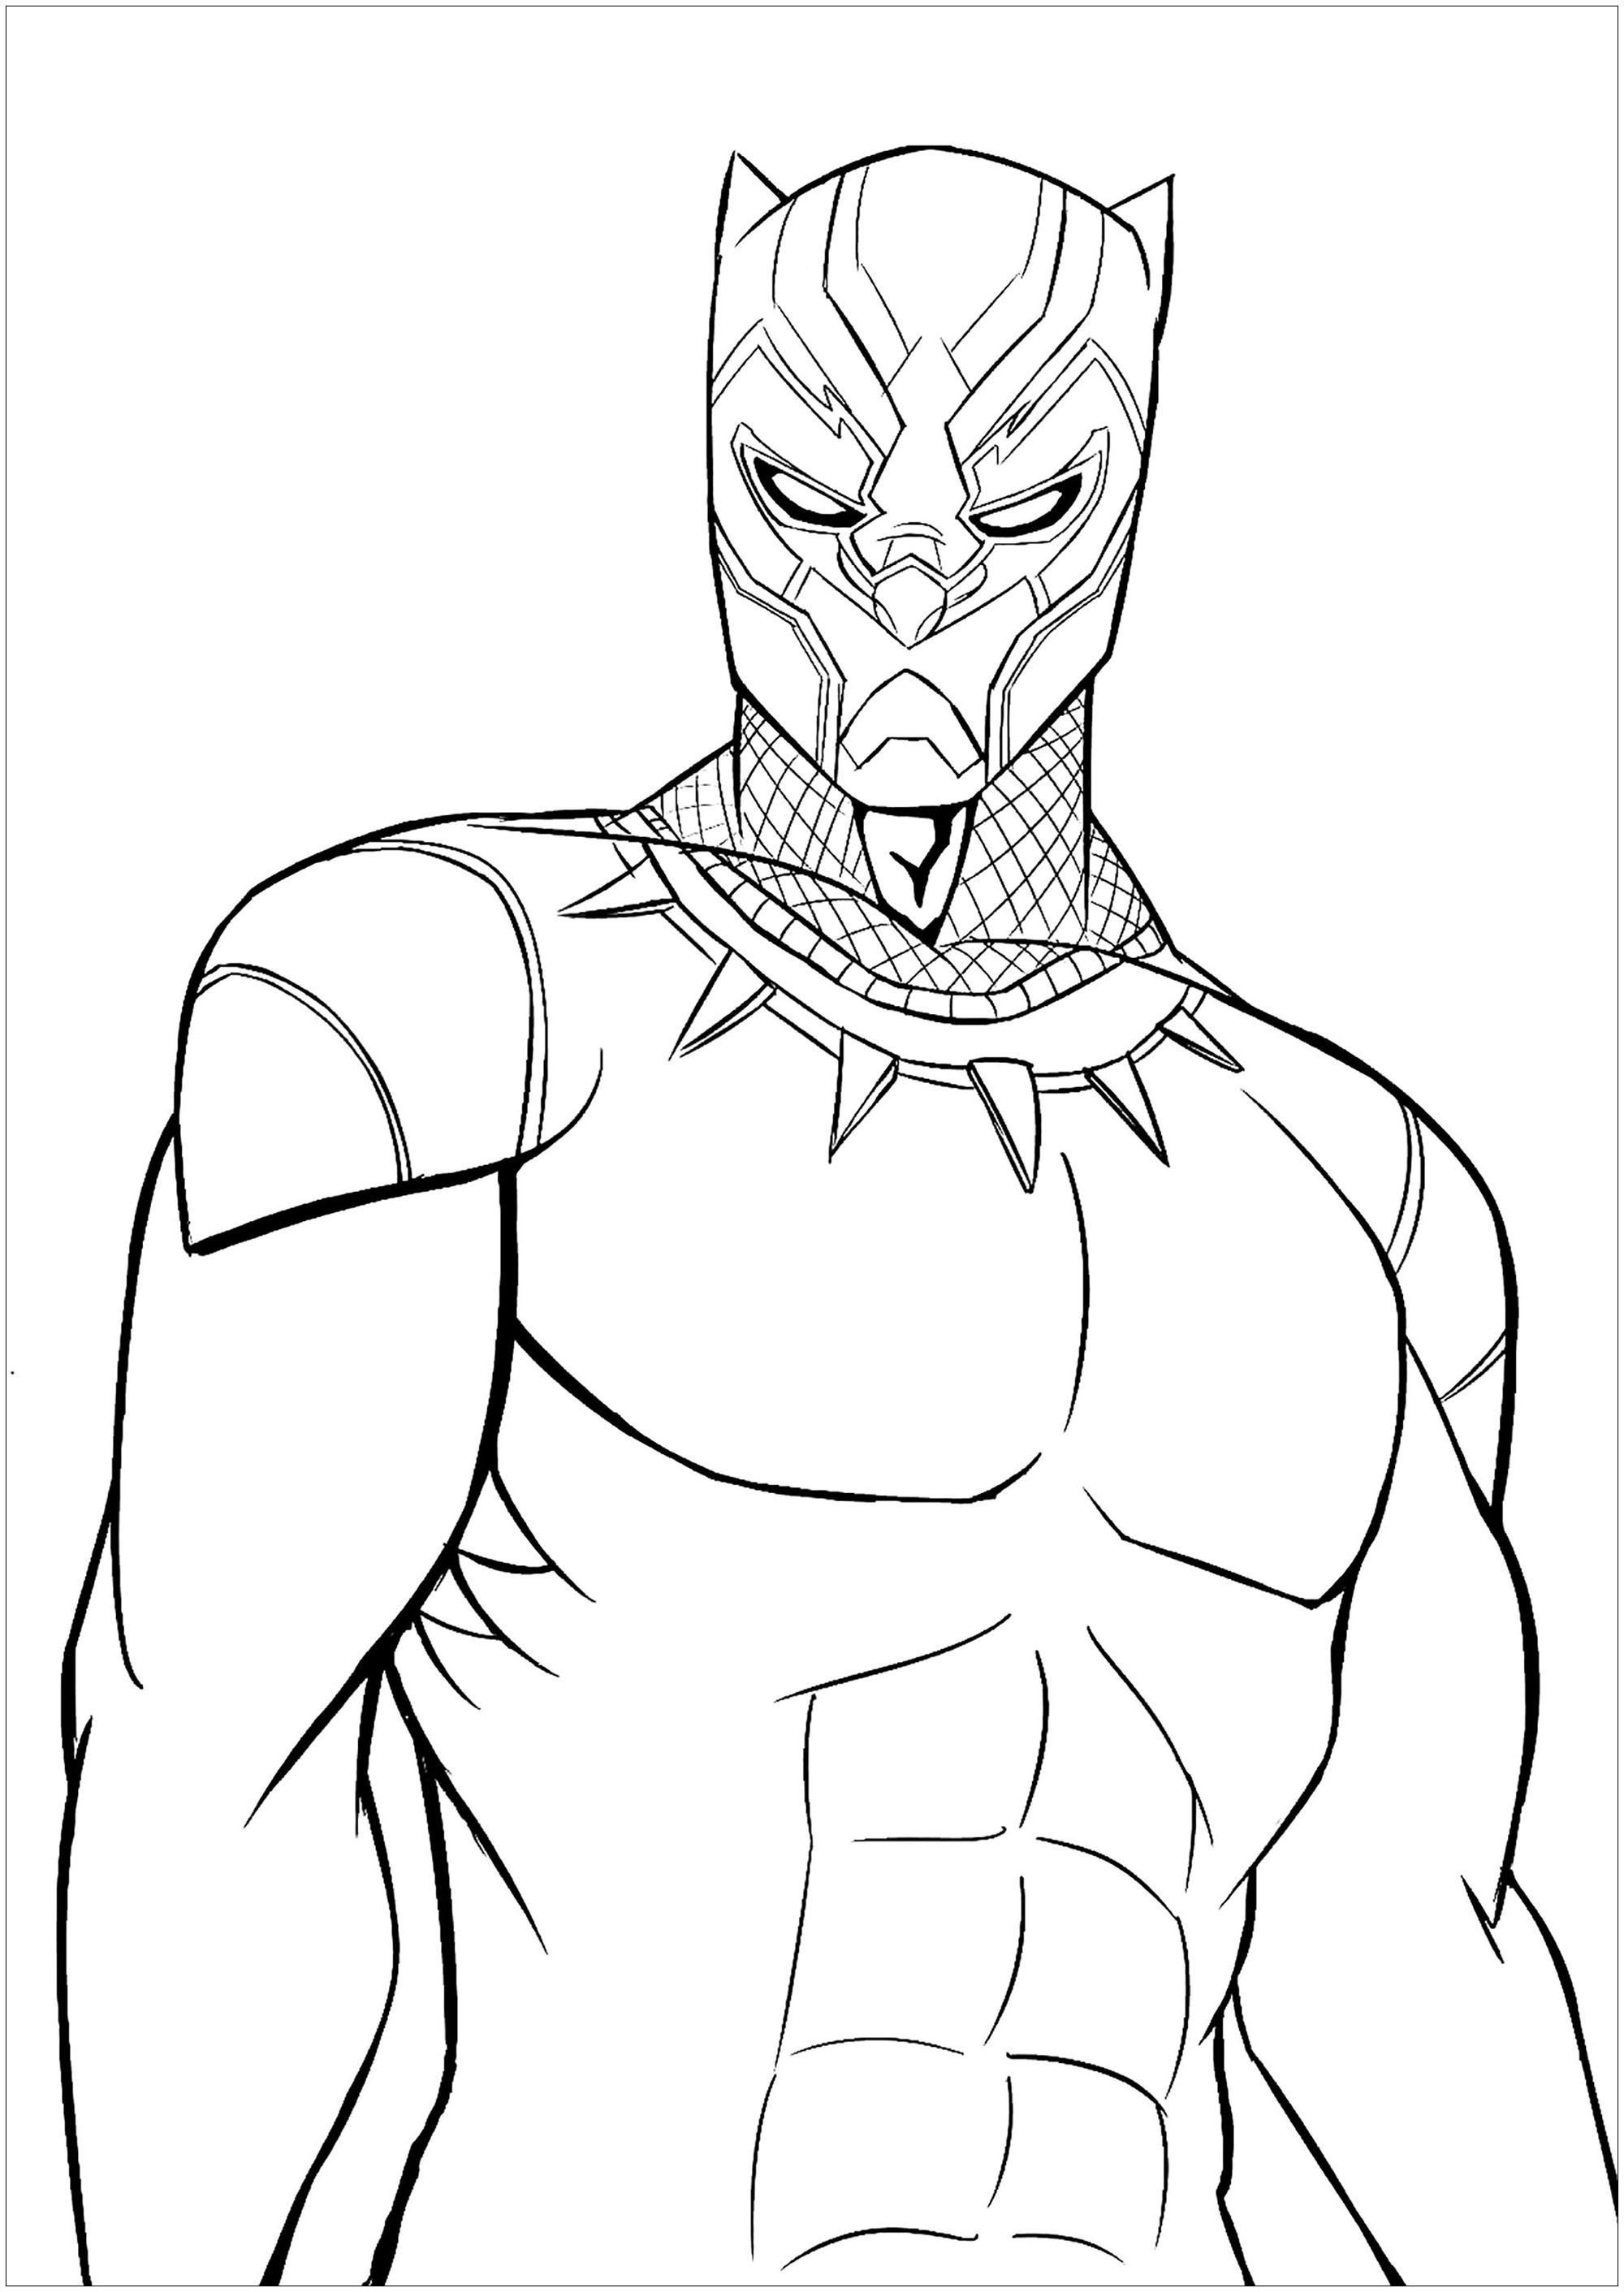 Black Panther Coloring Page To Print And Color For Free Avengers Coloring Pages Superhero Coloring Avengers Coloring